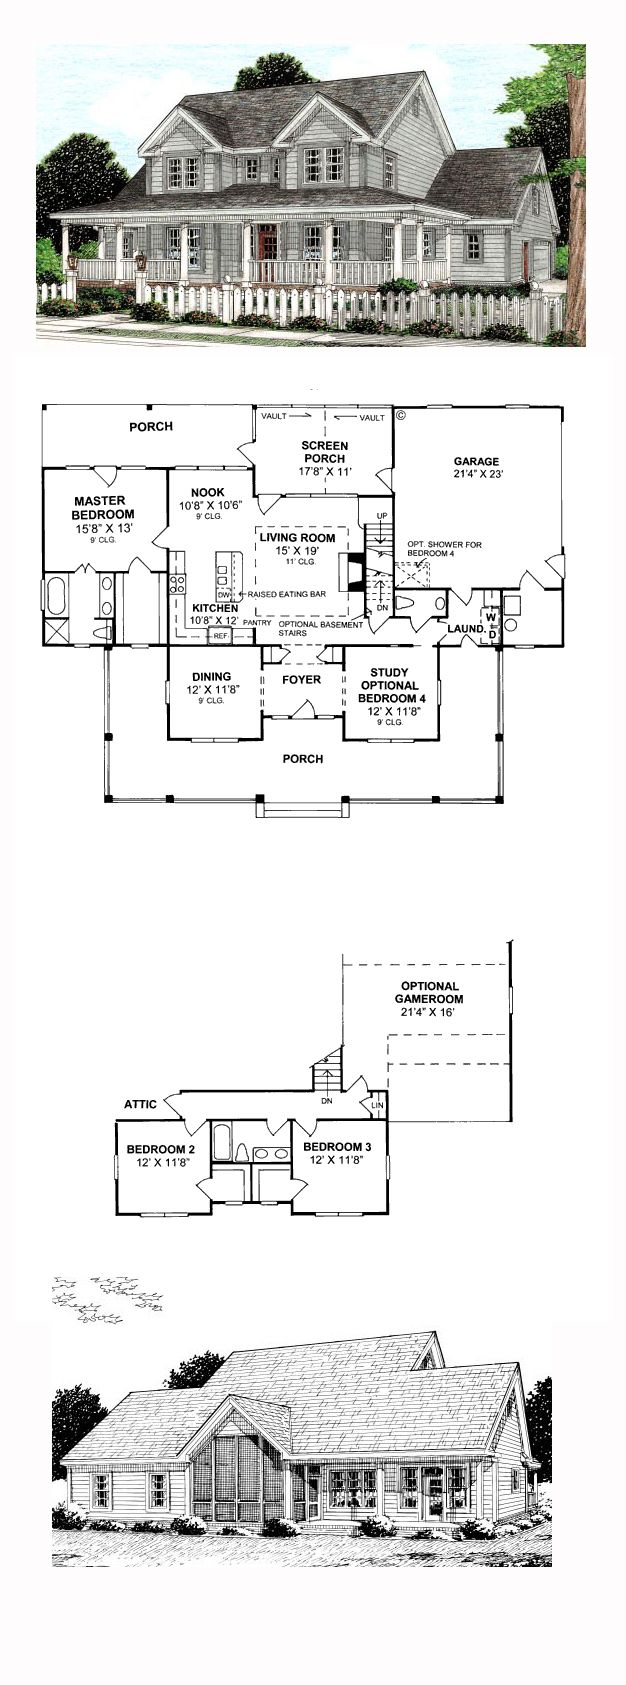 farm house plans with great rear views house home plans modern house plans with rear view woodguides